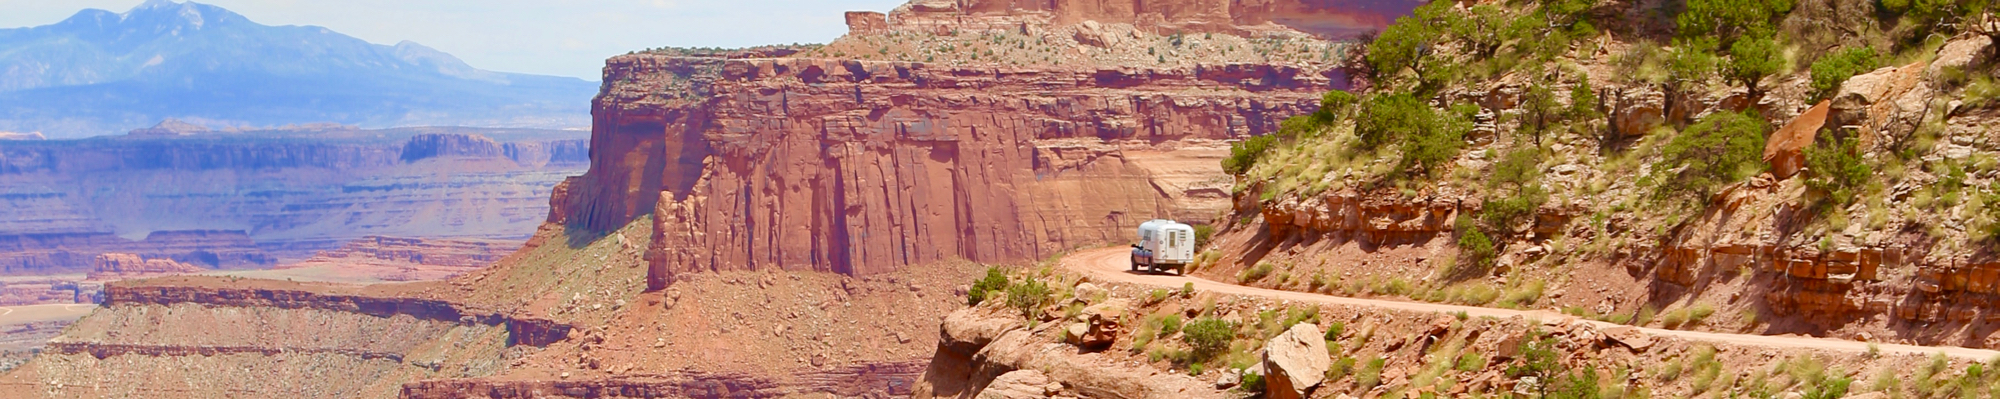 1970 Avion C11 truck camper traveling down Shafer Trail in Canyonlands National Park.